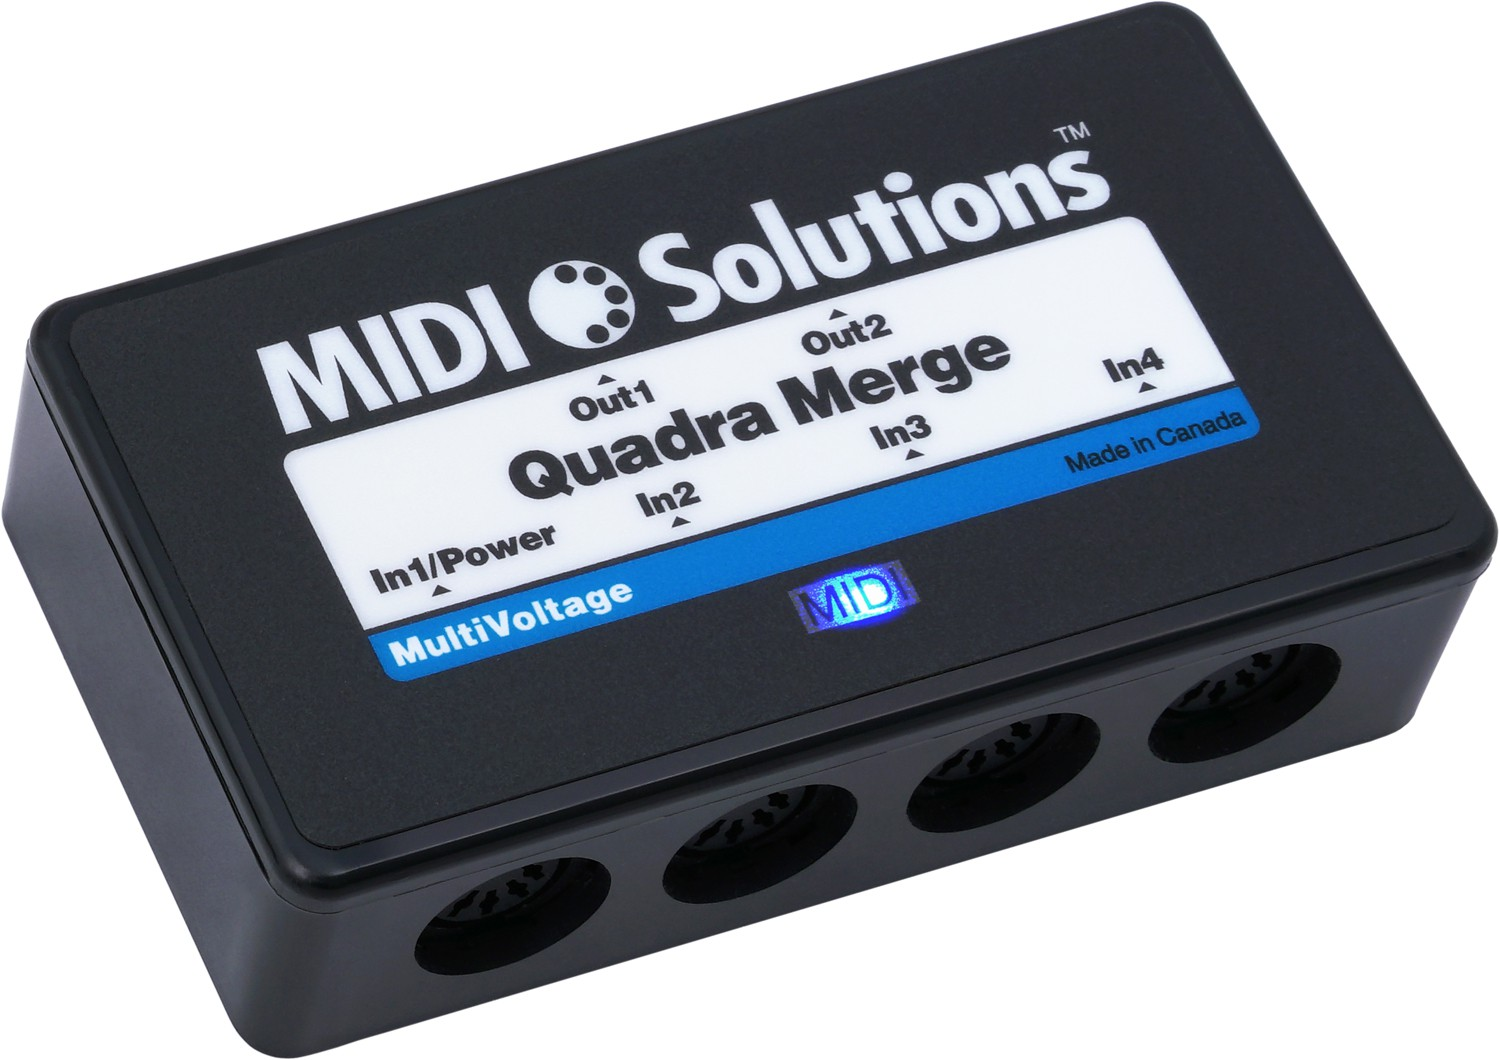 MIDI Solutions Quadra Merger